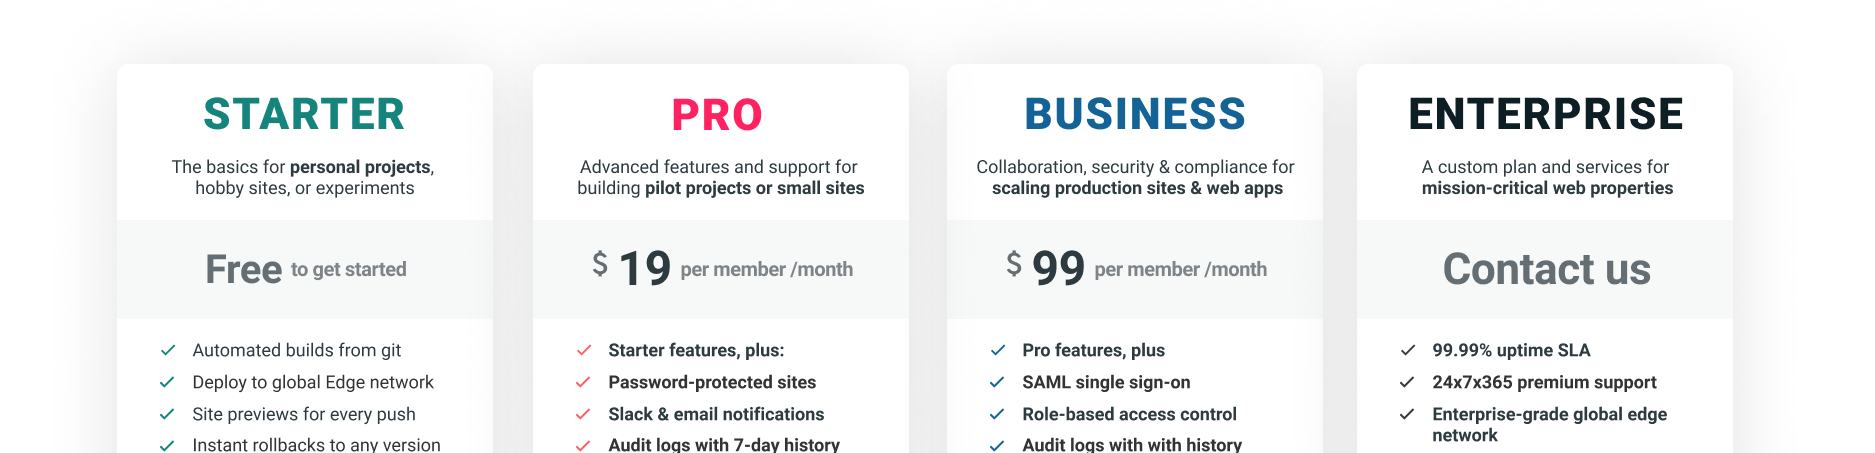 netlify pricing plans